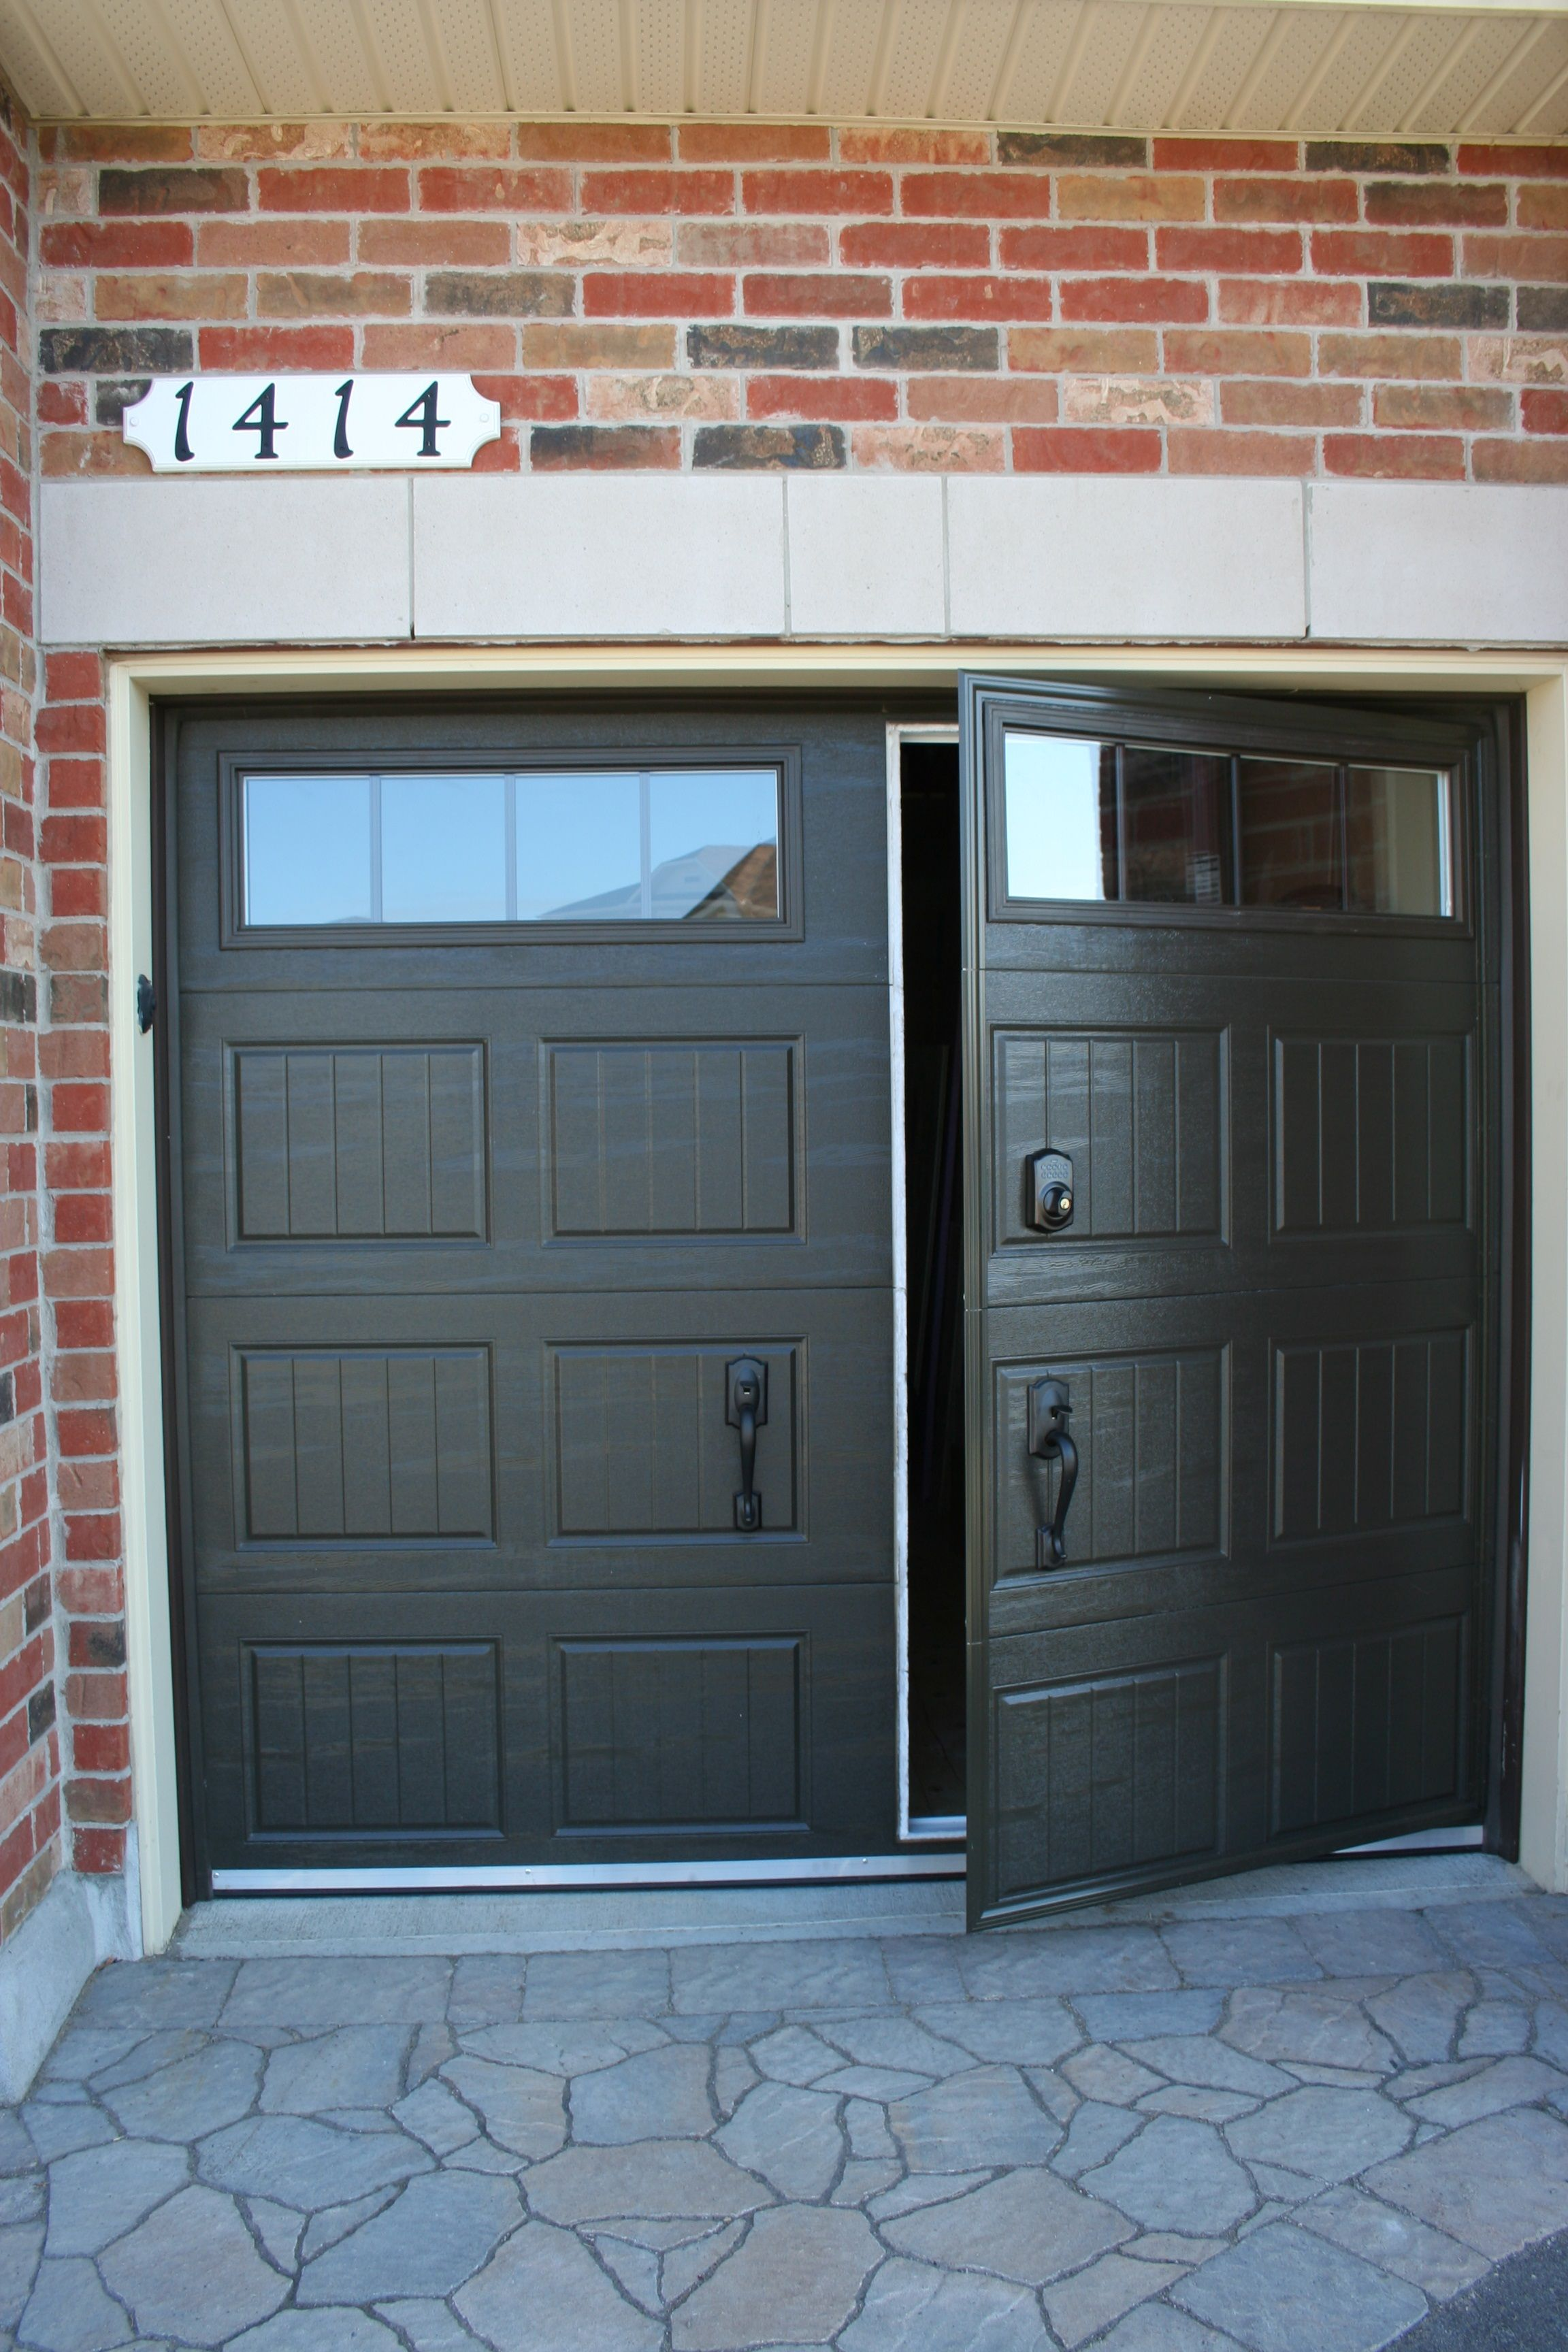 and this doors cheyenne repairs classica different styles we wy garage door the many like capital fb offer city designs